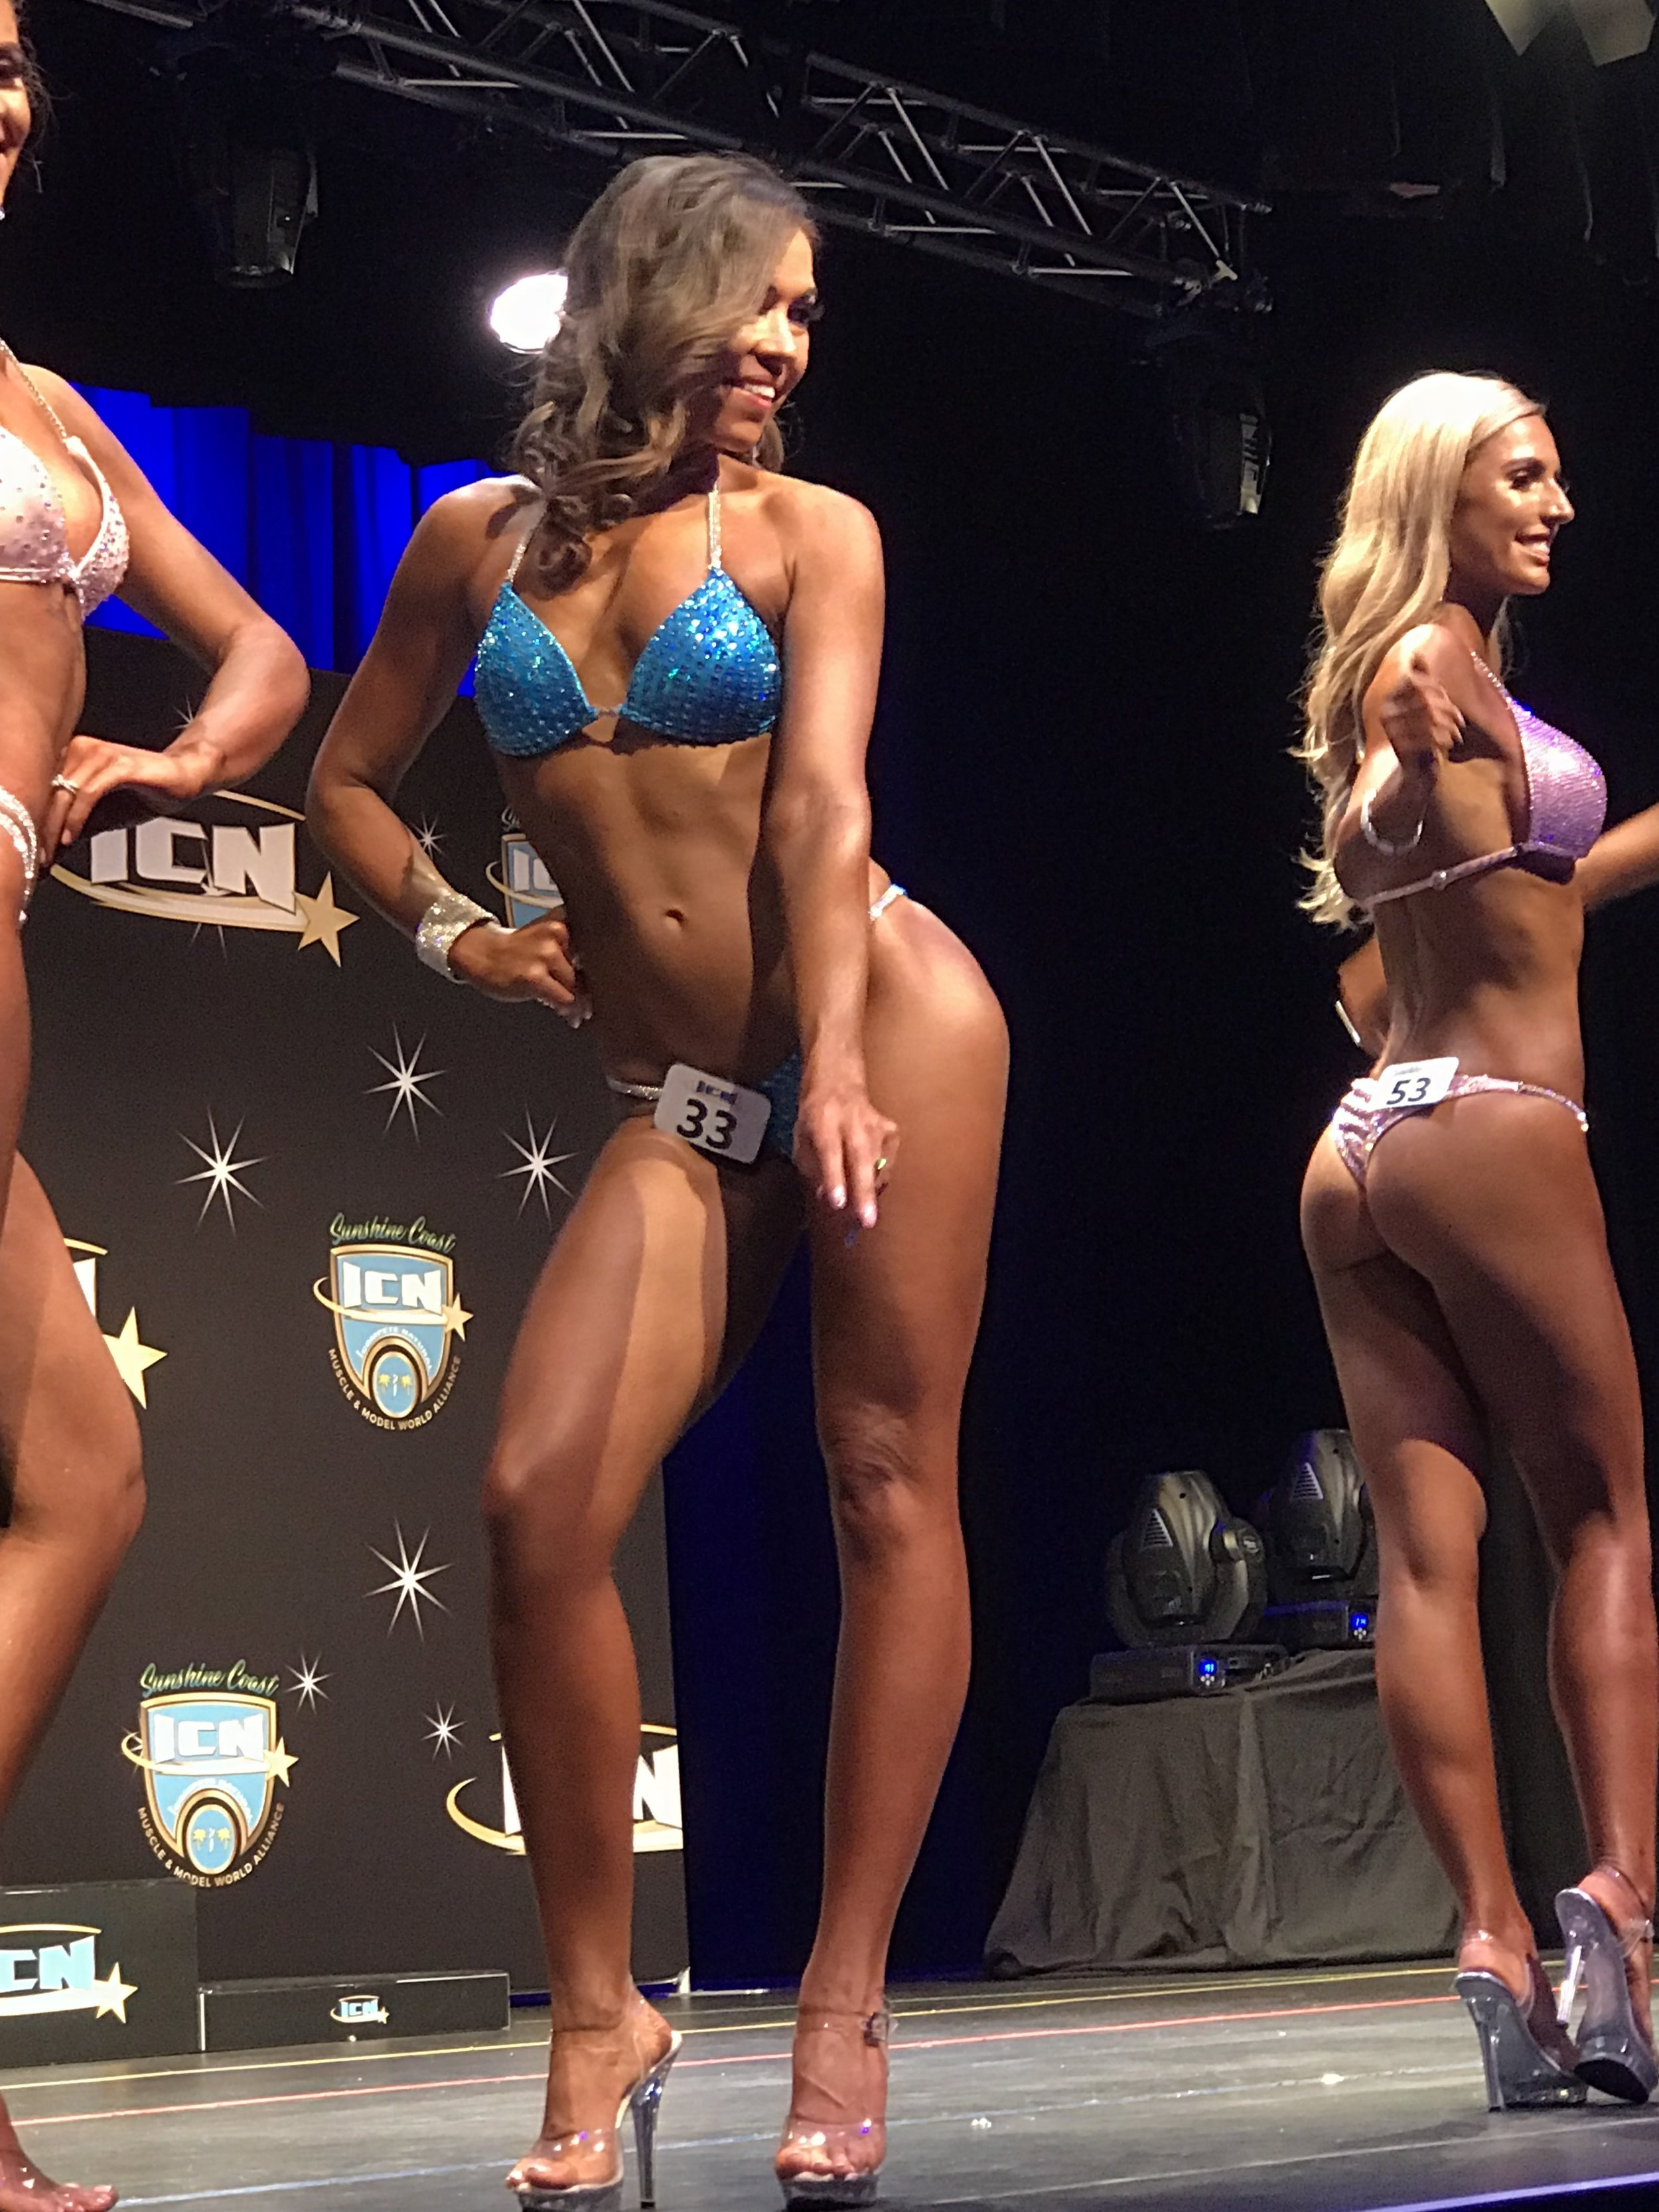 Brooke Pearce - This prep has been the most successful I have ever completed, personally, mentally, physically and the outcome on the day. The support Paul provided went above and beyond what any coach ever has. Not only has it been a successful prep but also a successful reverse diet and this is a testament to Paul's knowledge and skills as a coach. From the first contact I had with Paul his humble attitude and over eagerness to always help and provide as much information as possible surpassed every expectation I ever had. His customer service is the best in the industry, weekly check-ins, video updates and YouTube videos, constantly checking in on his clients and ensuring we are physically progressing but also a major focus on our mental well being. All my macros and weight programs are custom built to me and what my goals are. I cannot recommend Paul enough, contest prep, weight loss, muscle gain any form of training you need I guarantee you will not be disappointed. I am so grateful I found Paul and from my experience he is the best in the industry